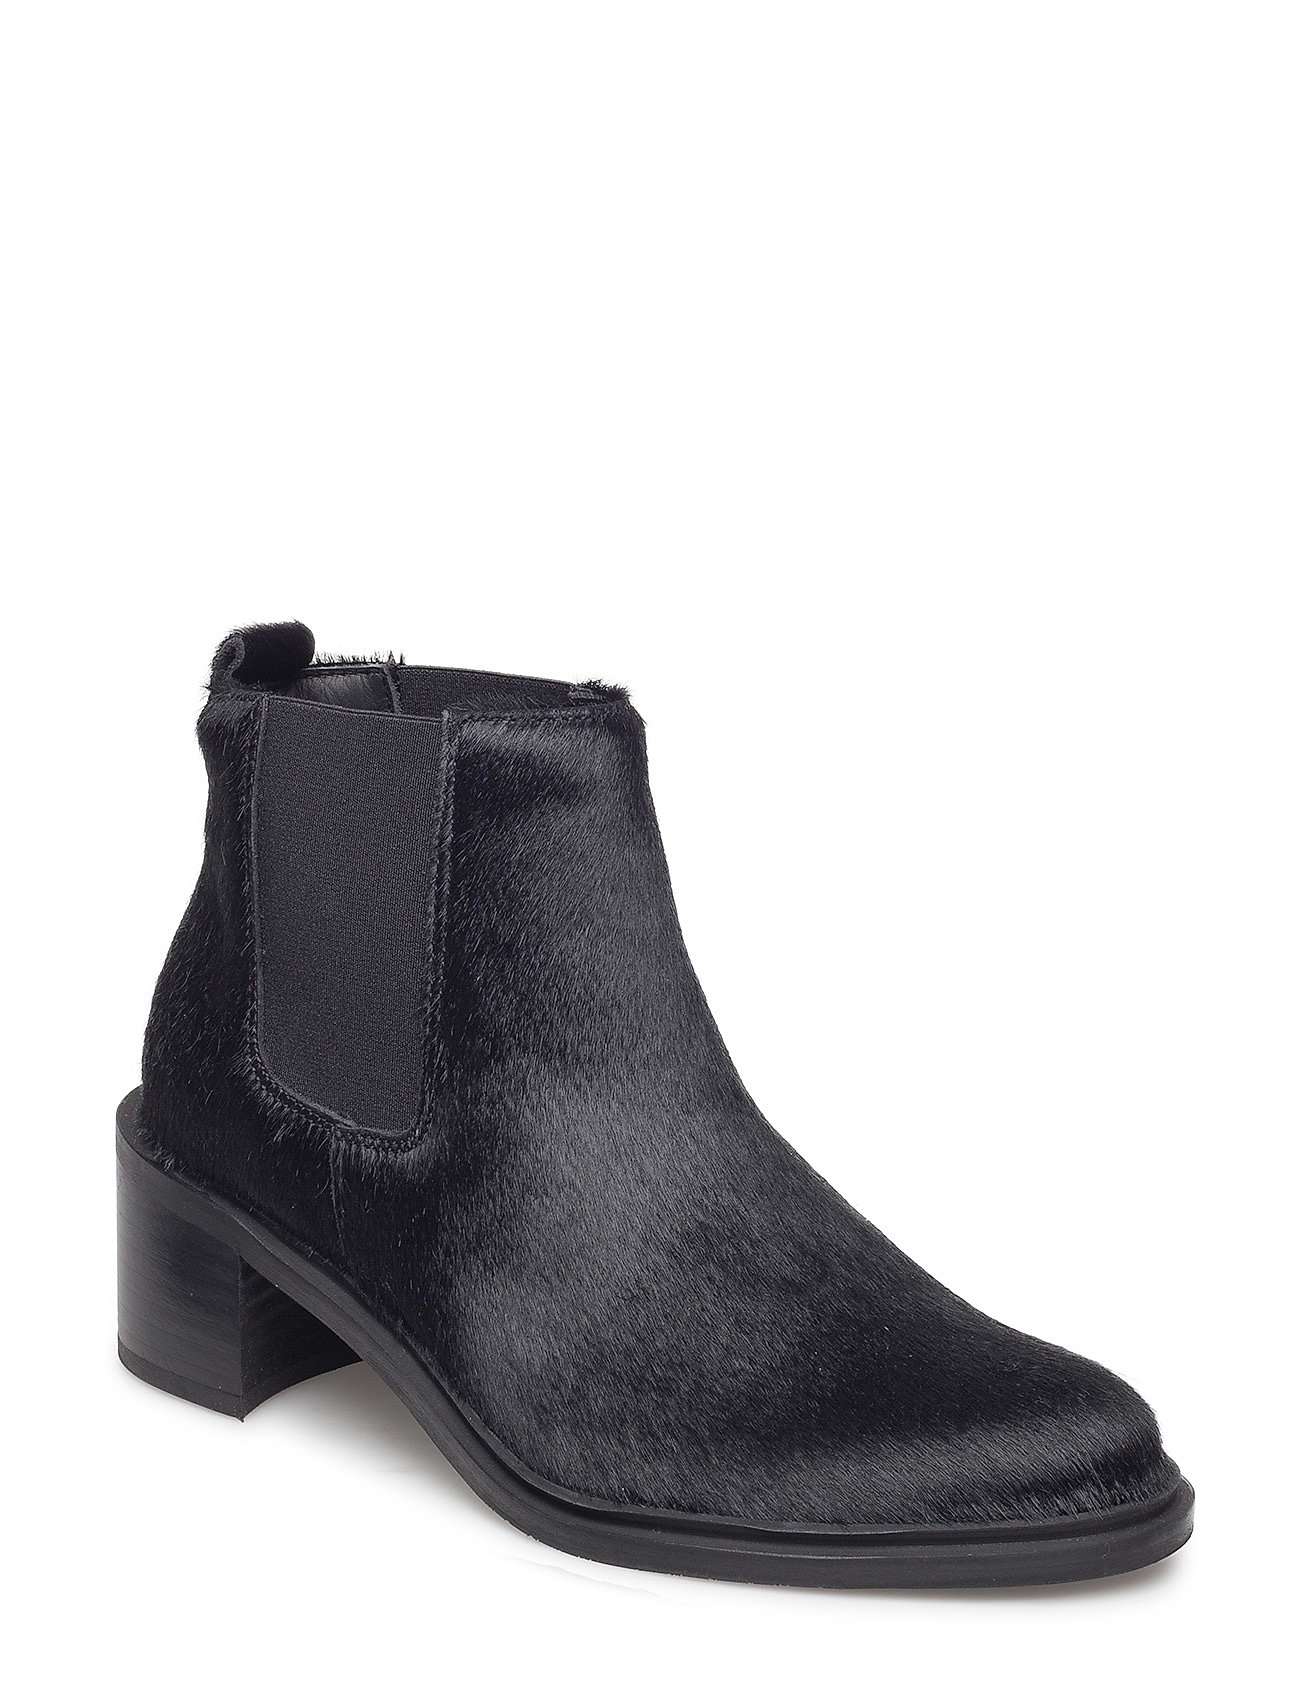 Image of Town Chelsea Pony Shoes Boots Ankle Boots Ankle Boot - Heel Sort Royal RepubliQ (3036122269)